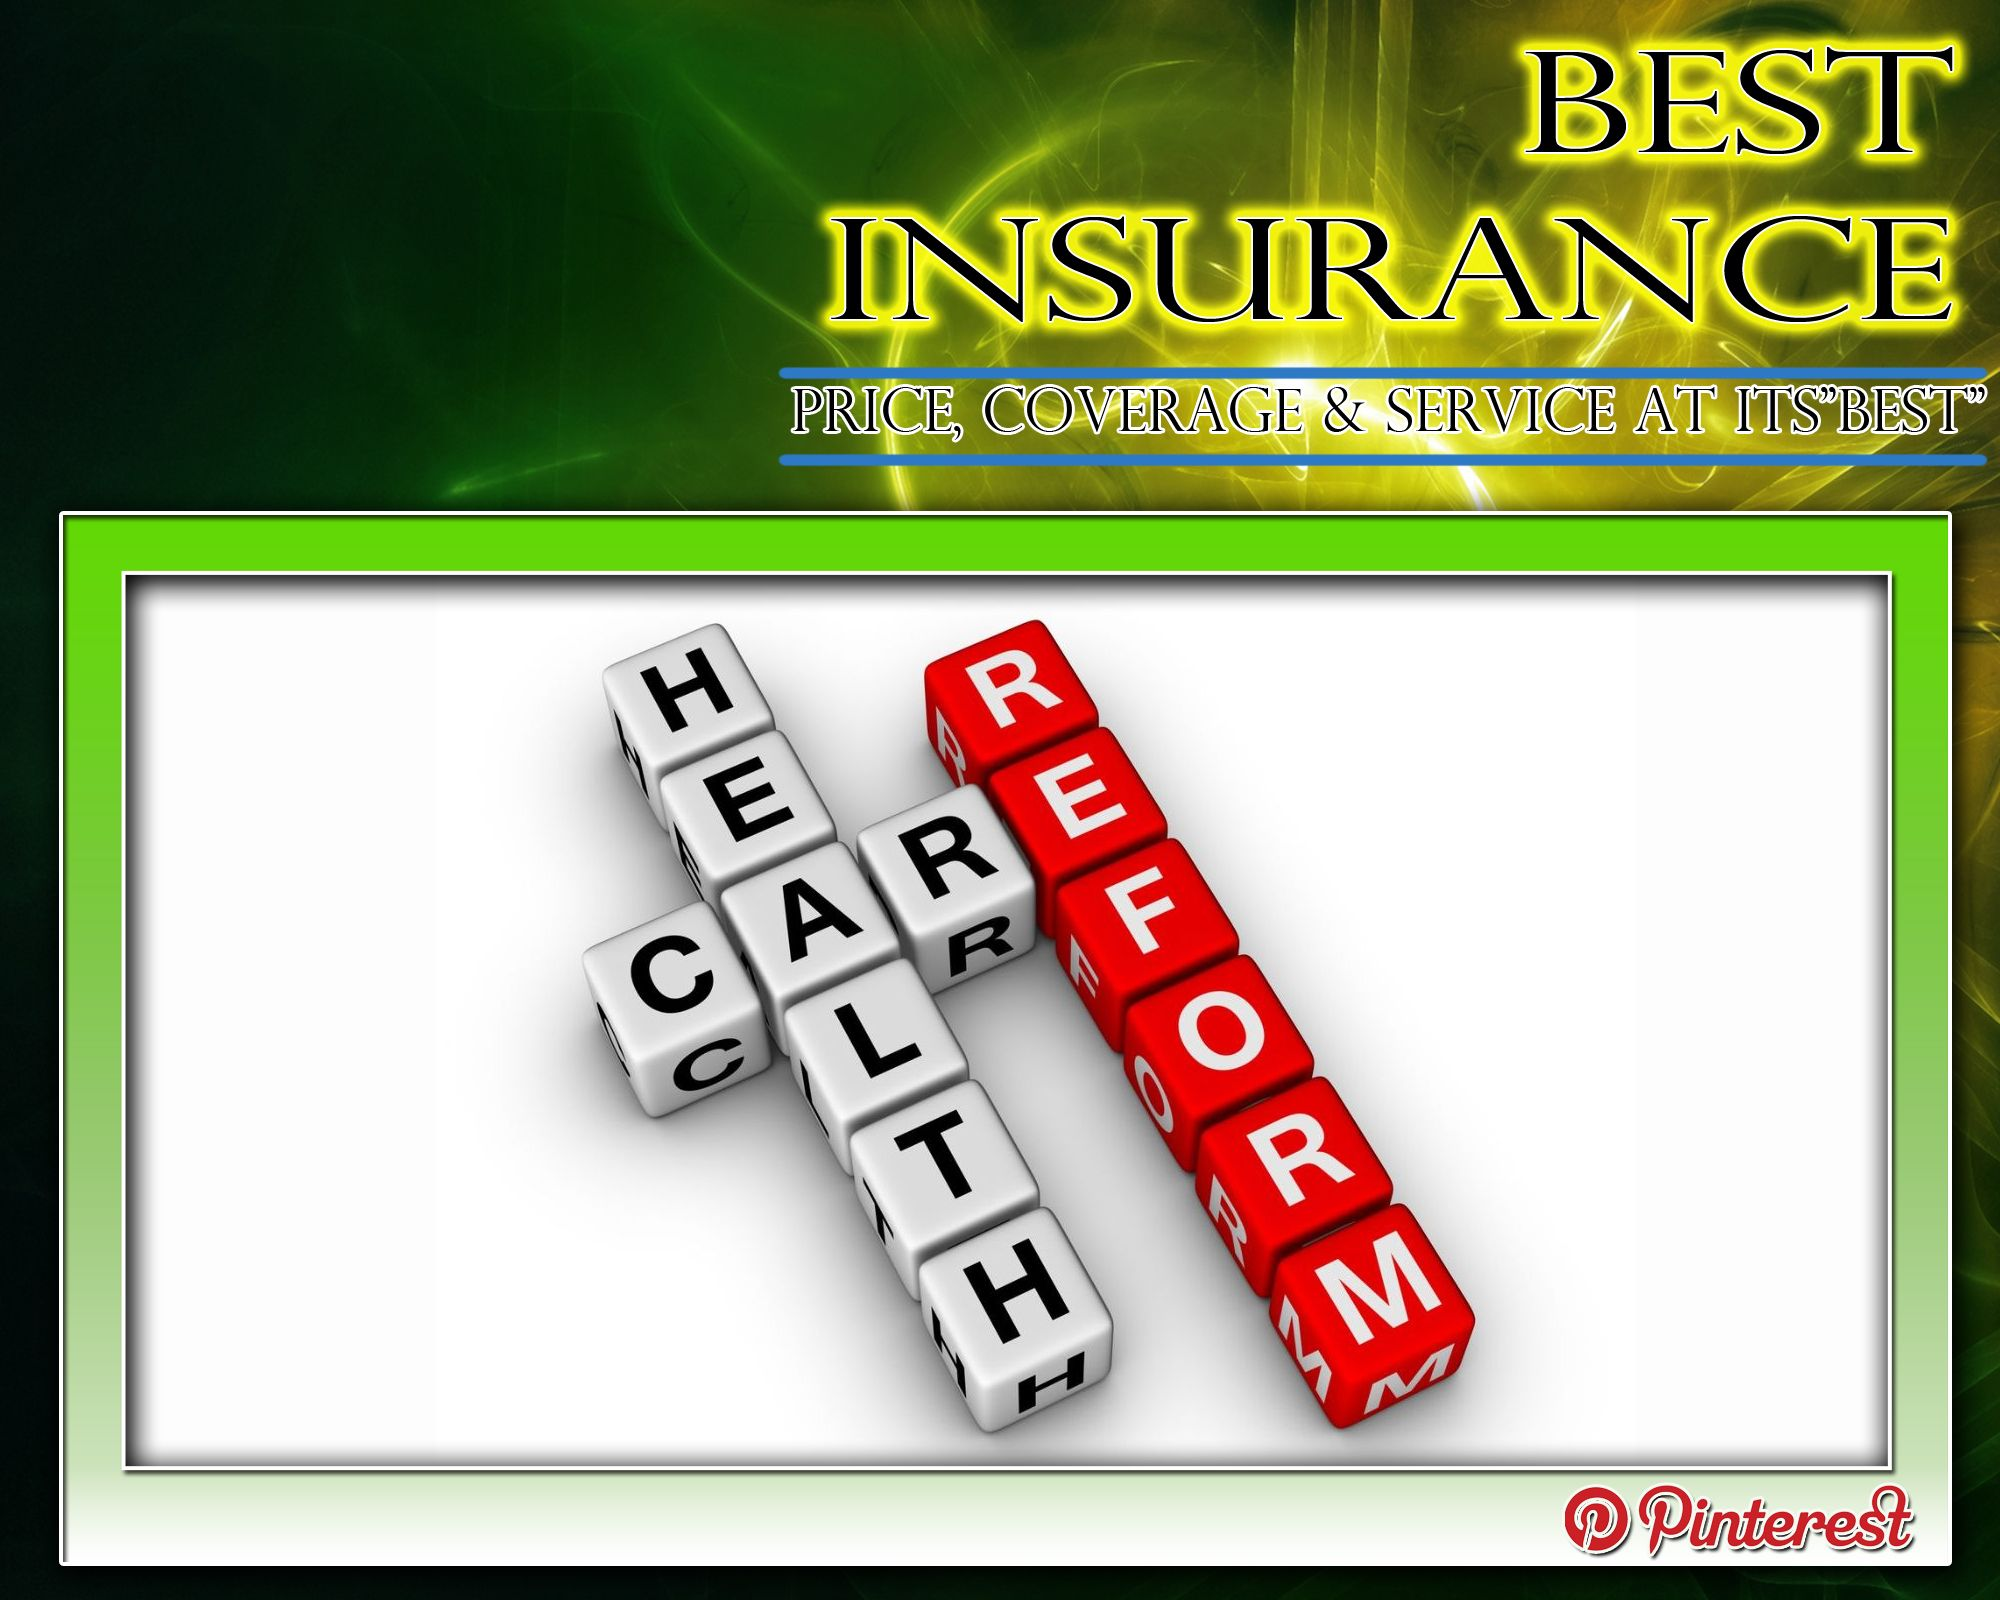 Autoinsuranceft Lauderdale Health Insurance Portability Best